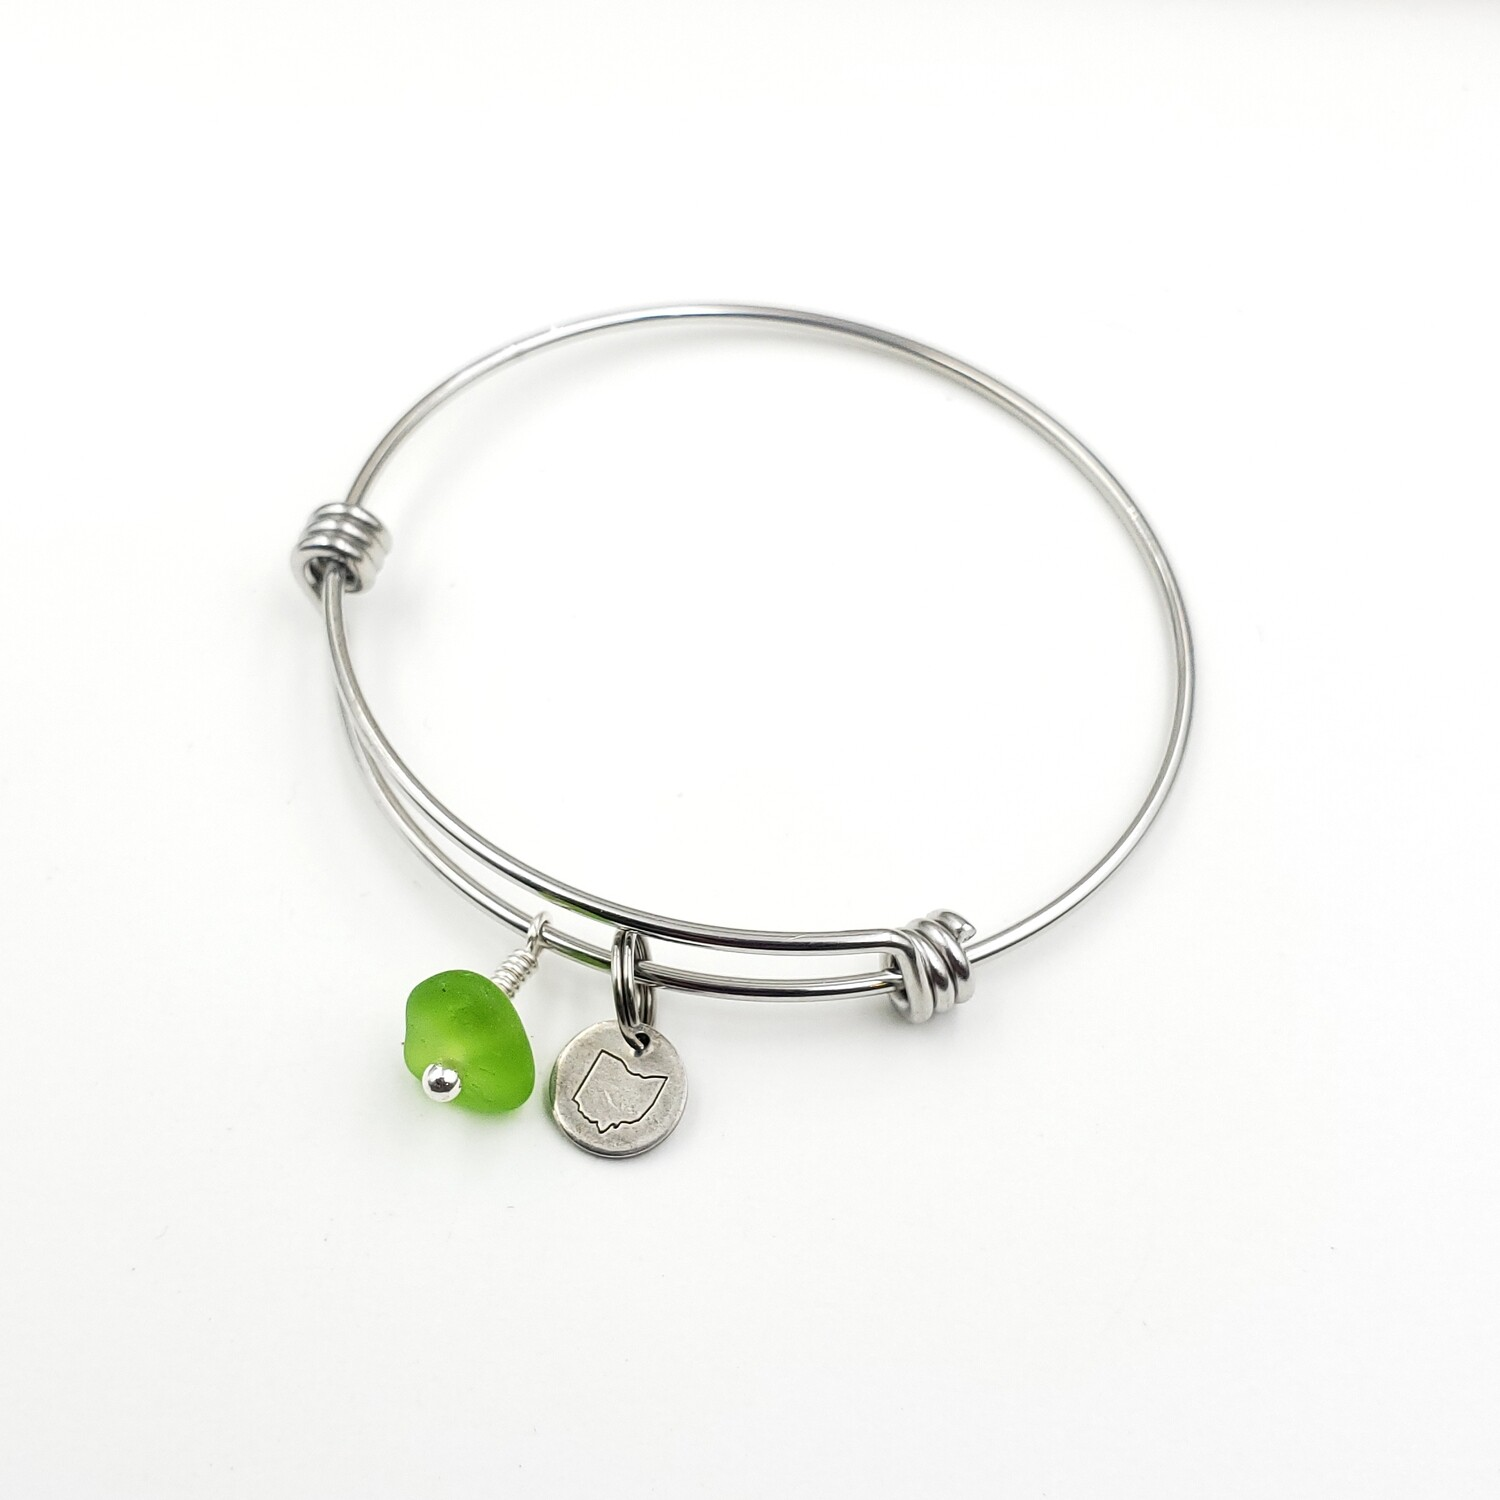 Bangle Bracelet with Stamped State of Ohio Charm and Spring Green Lake Erie Beach Glass